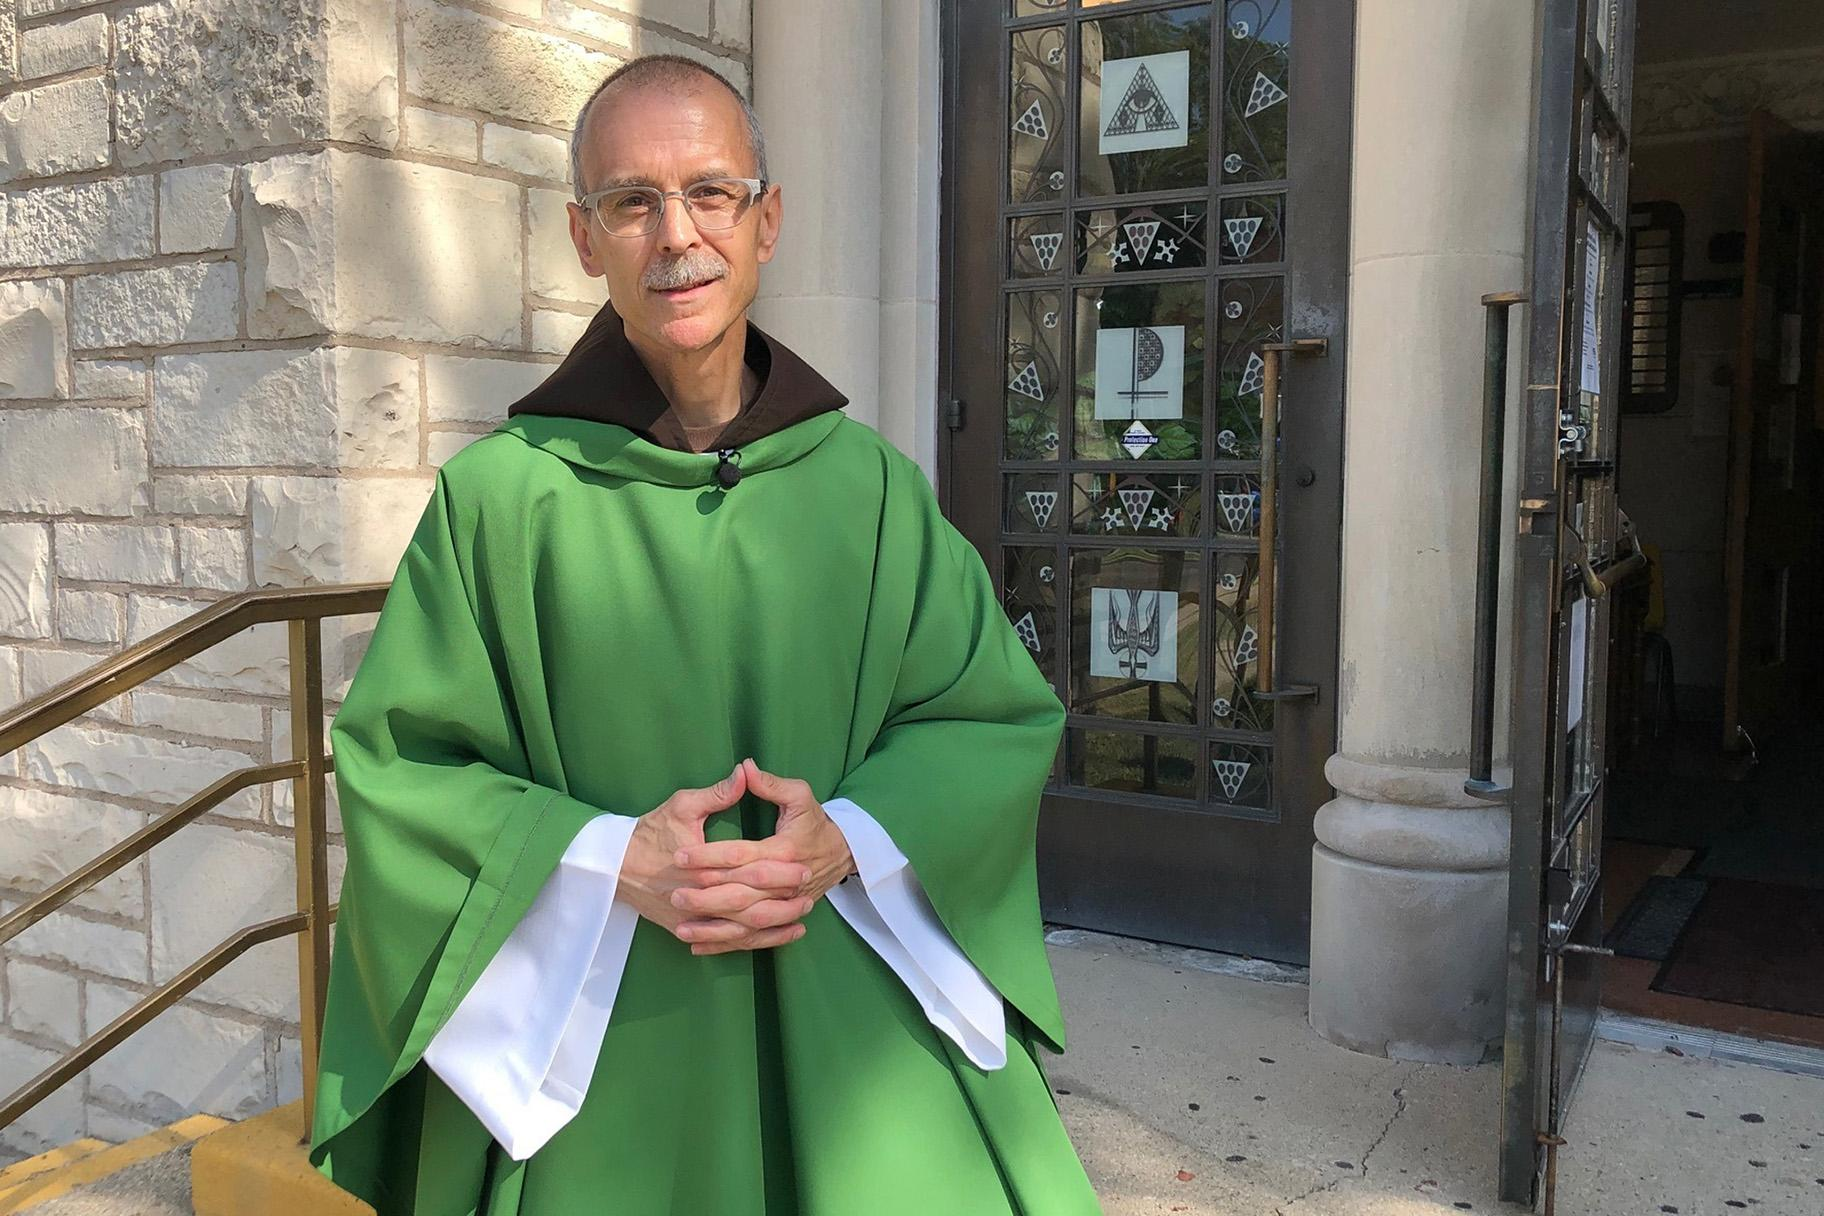 Rev. John Celichowski poses outside of the Saint Clare of Montefalco Catholic Church in Chicago. (AP Photo / Sophia Tareen)